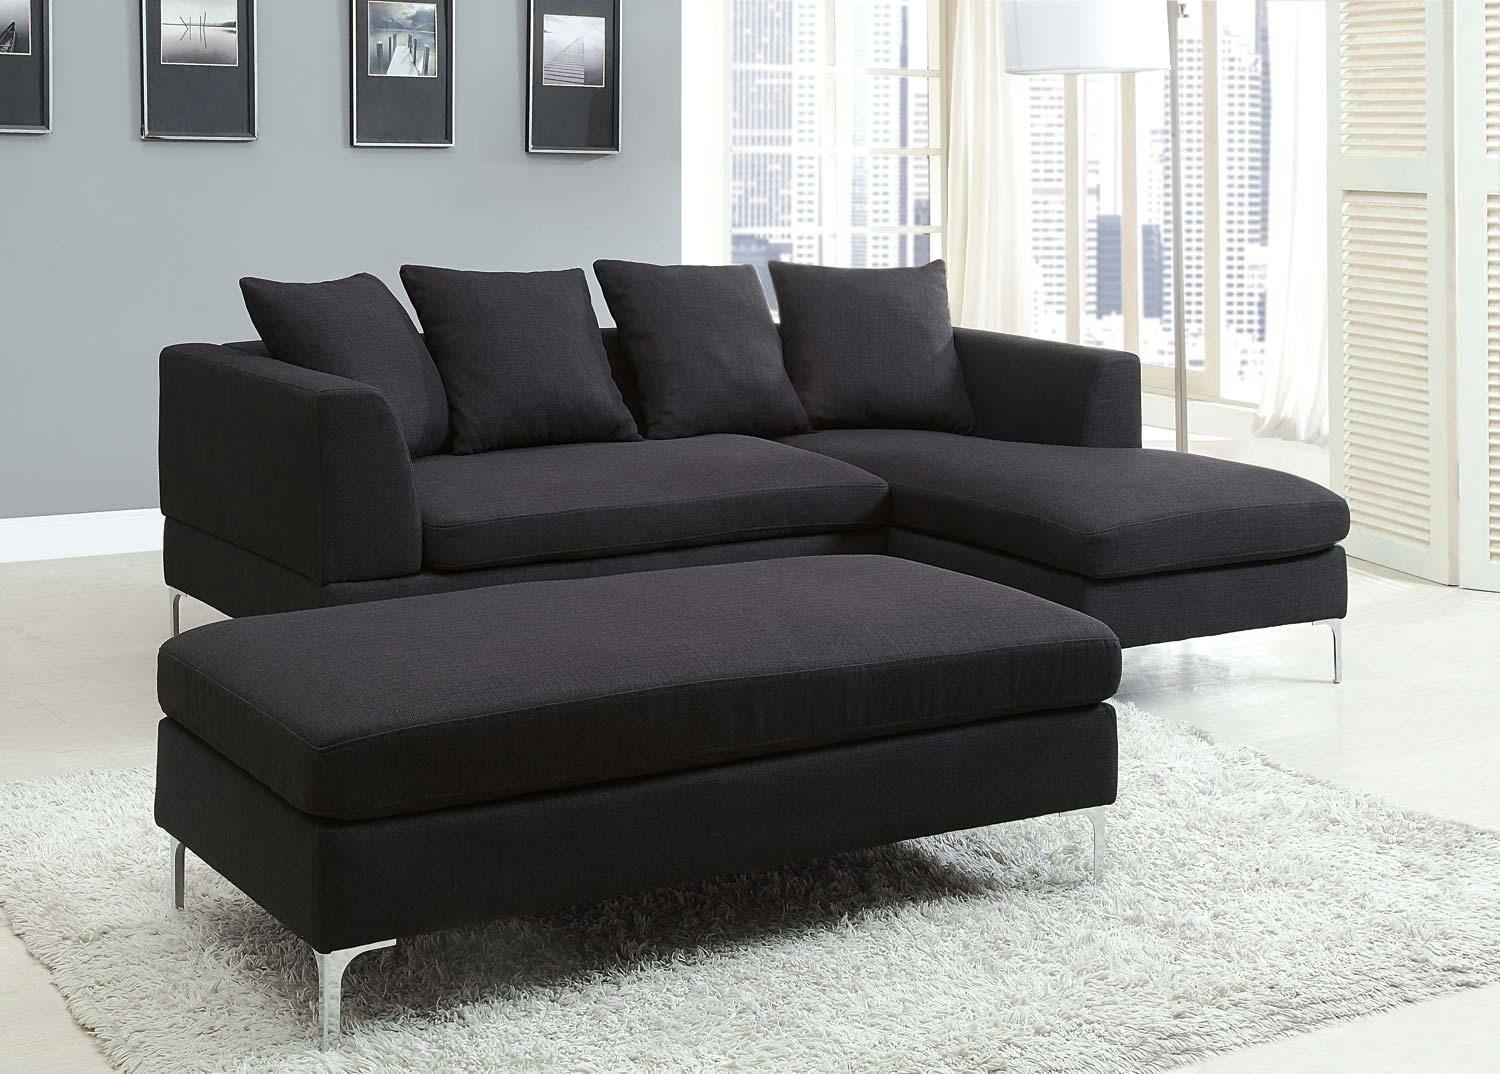 Sofas Center : Contemporary Leather Living Room Furniture Modern Throughout Small Modular Sofas (View 12 of 20)